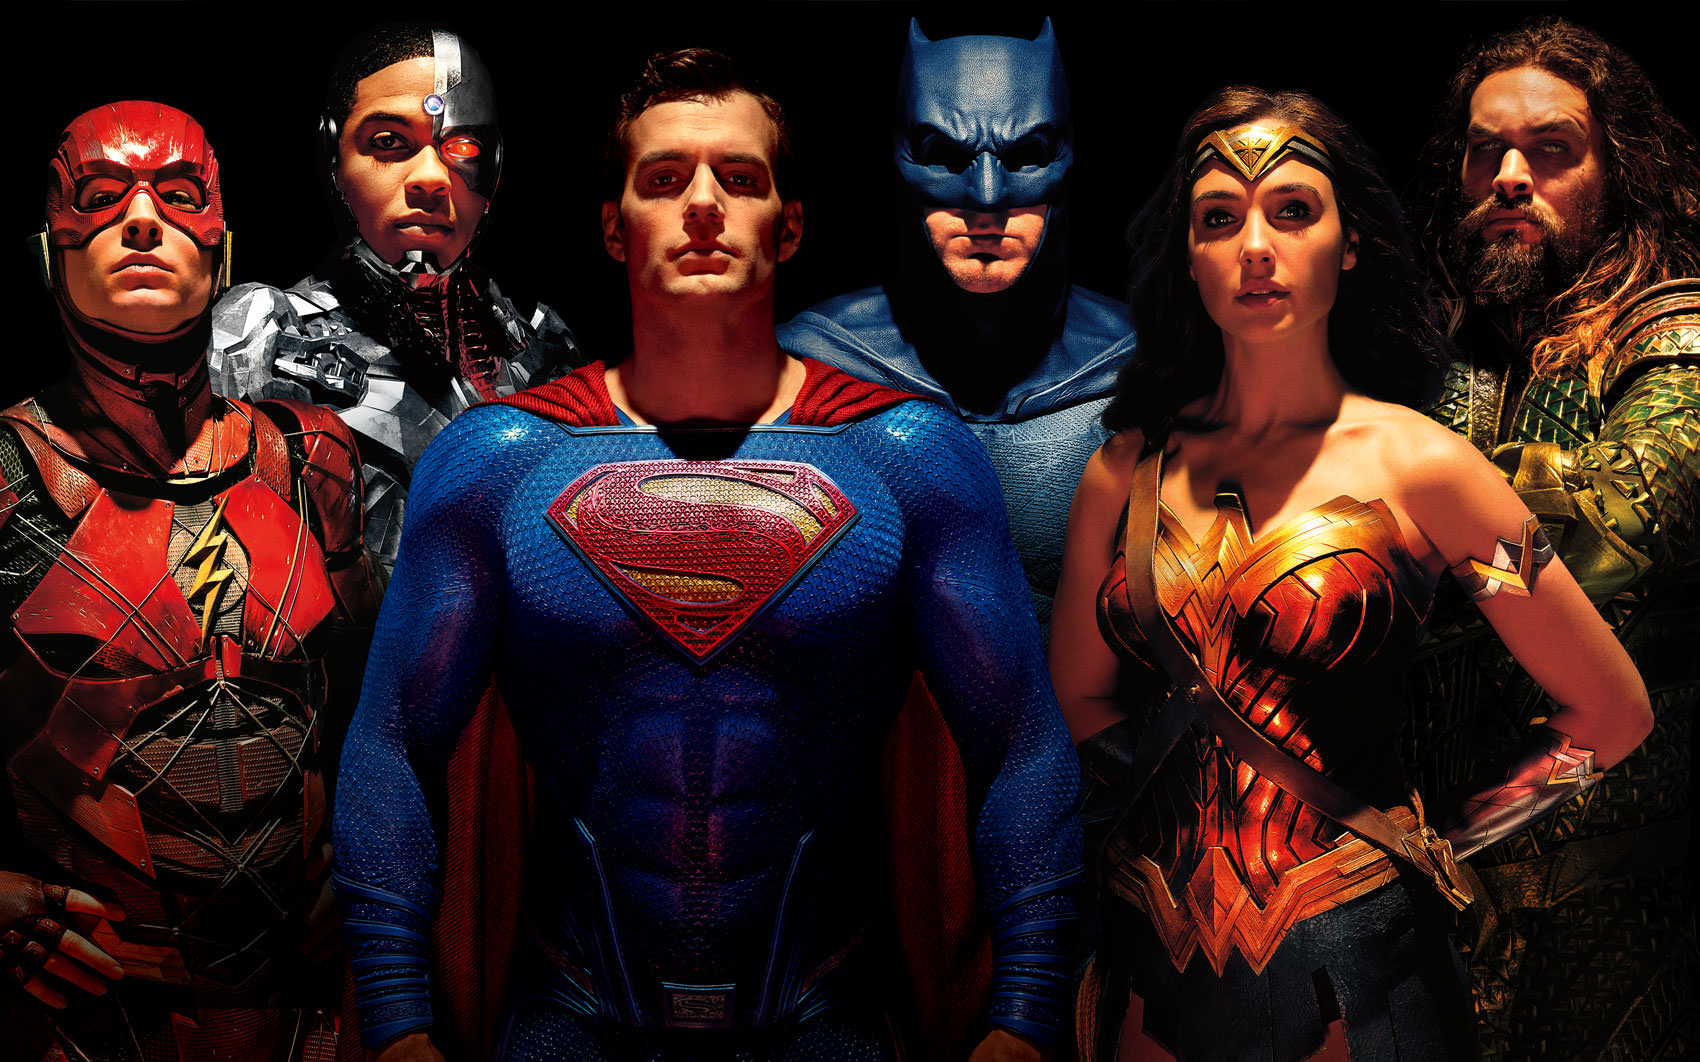 Watch Movie Justice League This Weekend